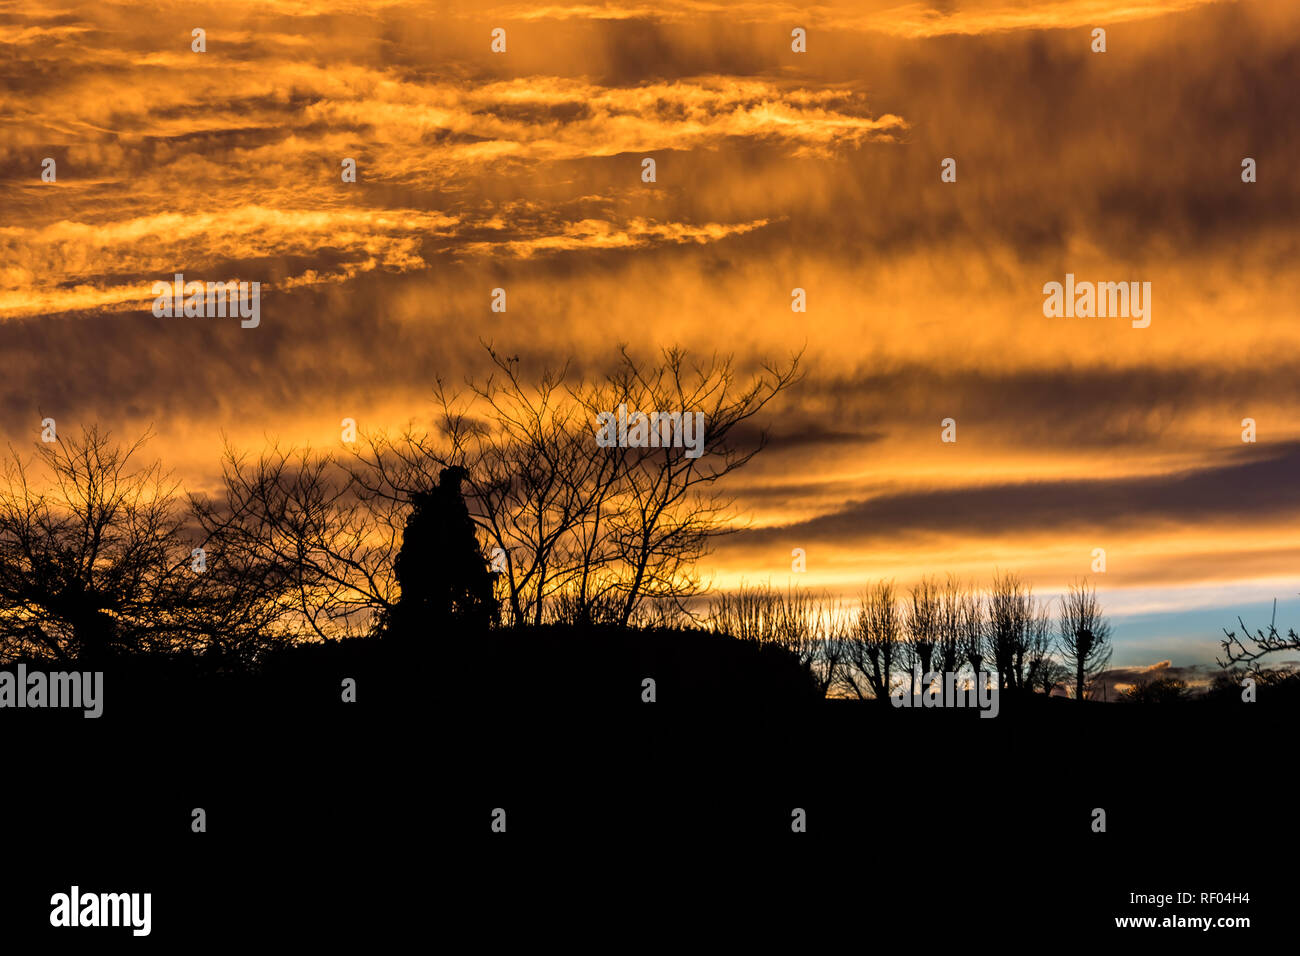 The clear air and the Devon hills seem to generate wonderful sunsets. - Stock Image